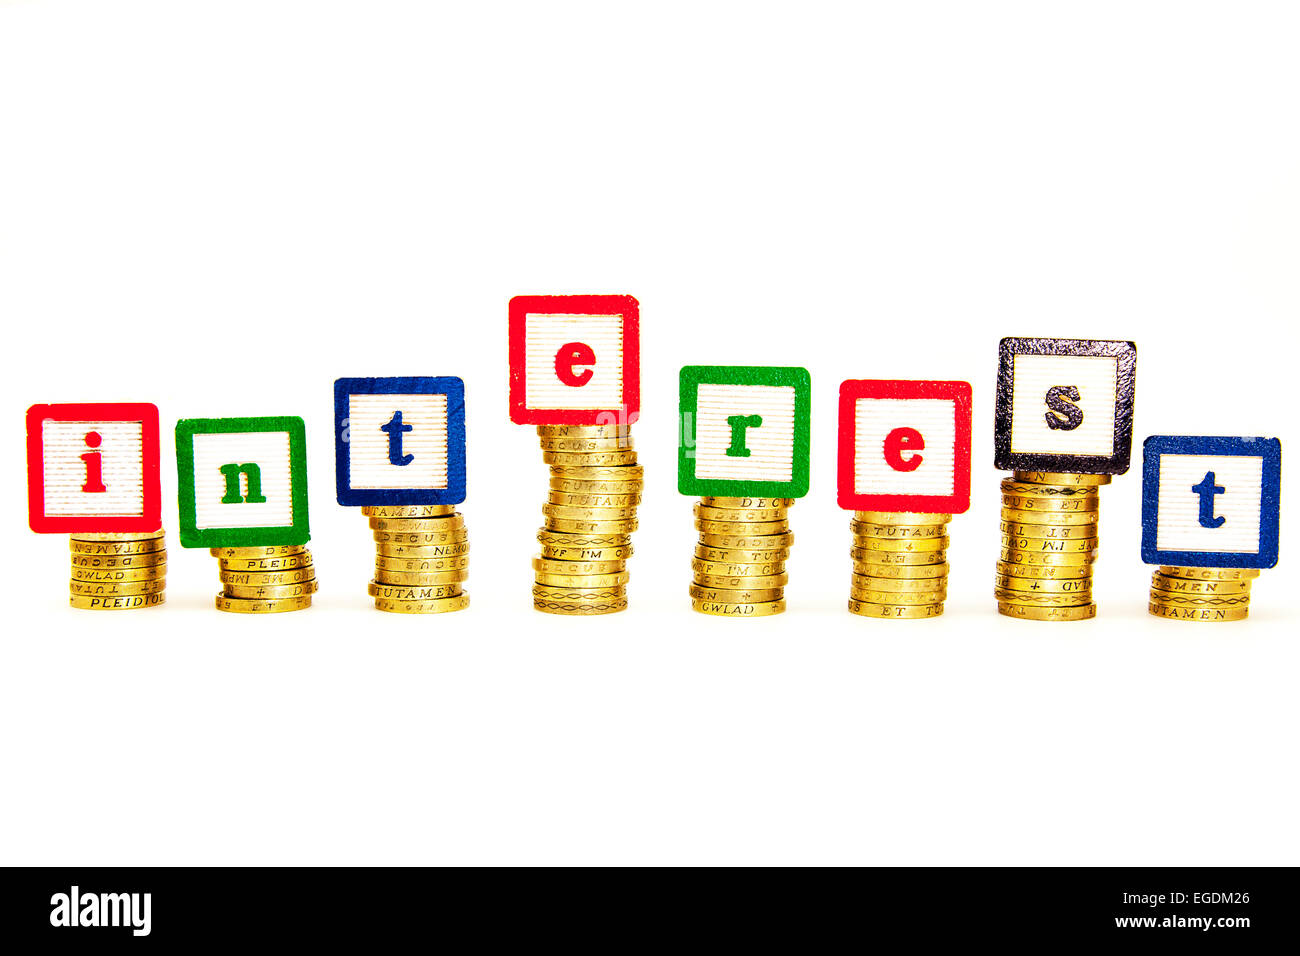 interest rates rate money expense high higher rising rise exchange repayment pay cut out copy space white background - Stock Image